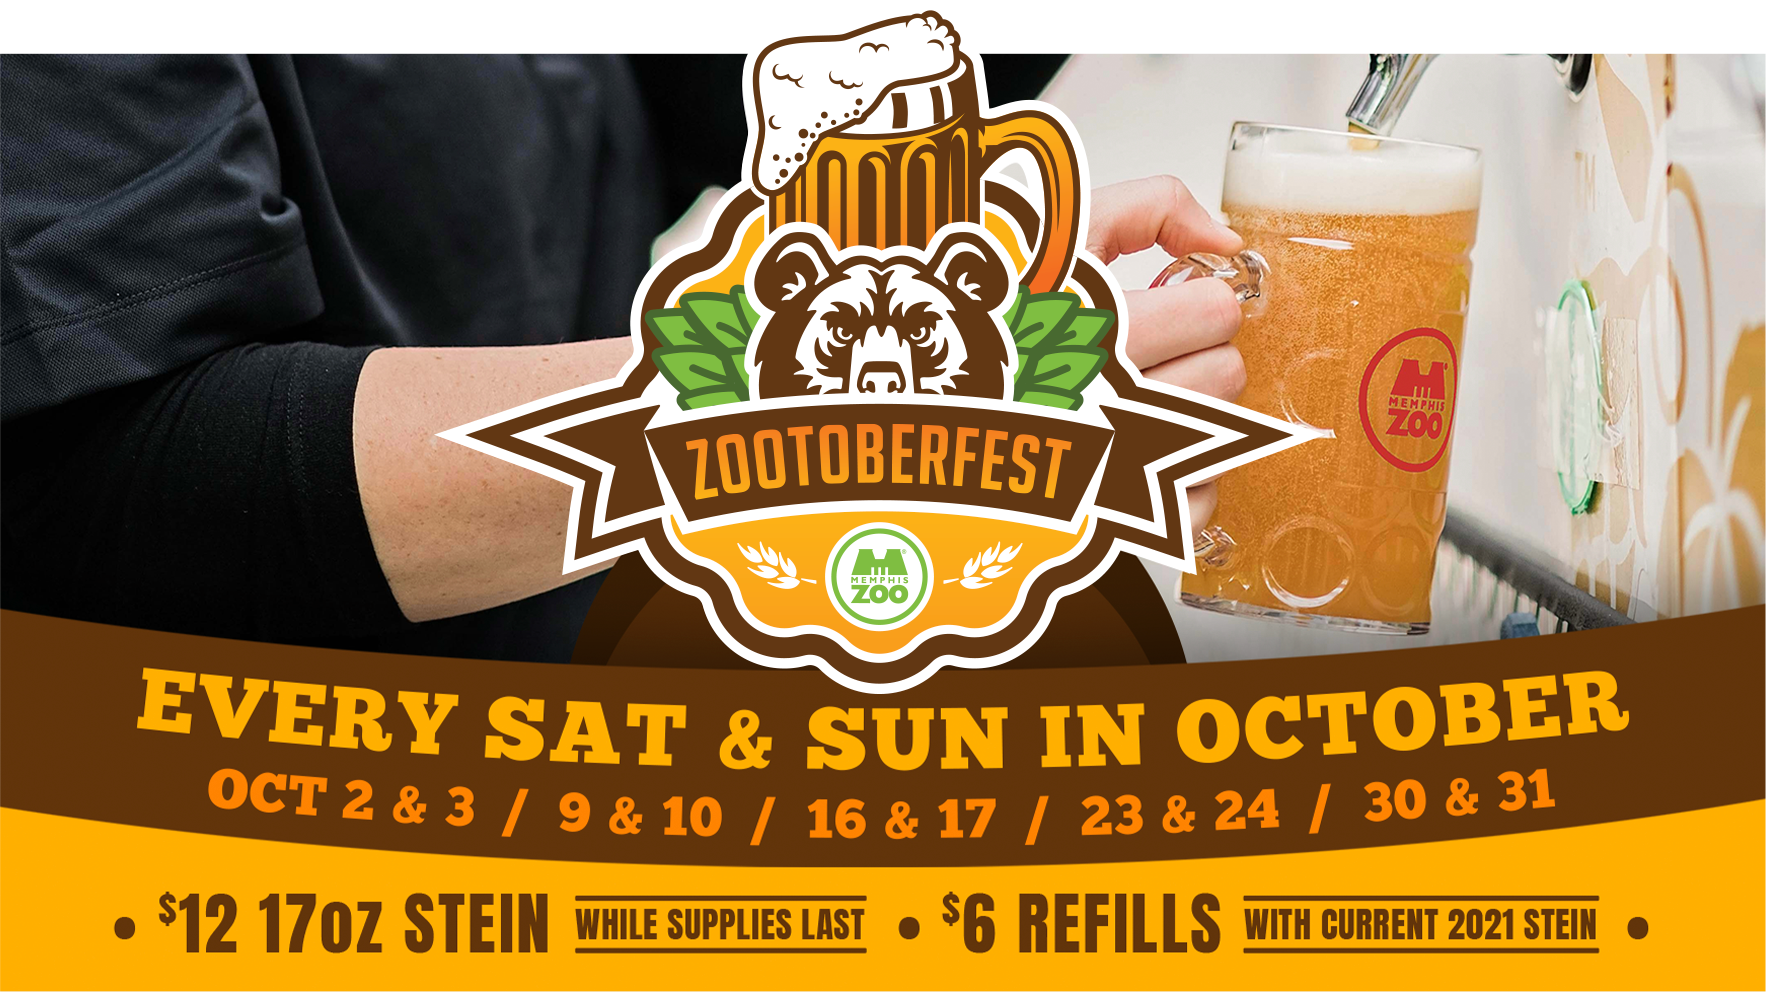 Zootoberfest every Saturday and Sunday in October